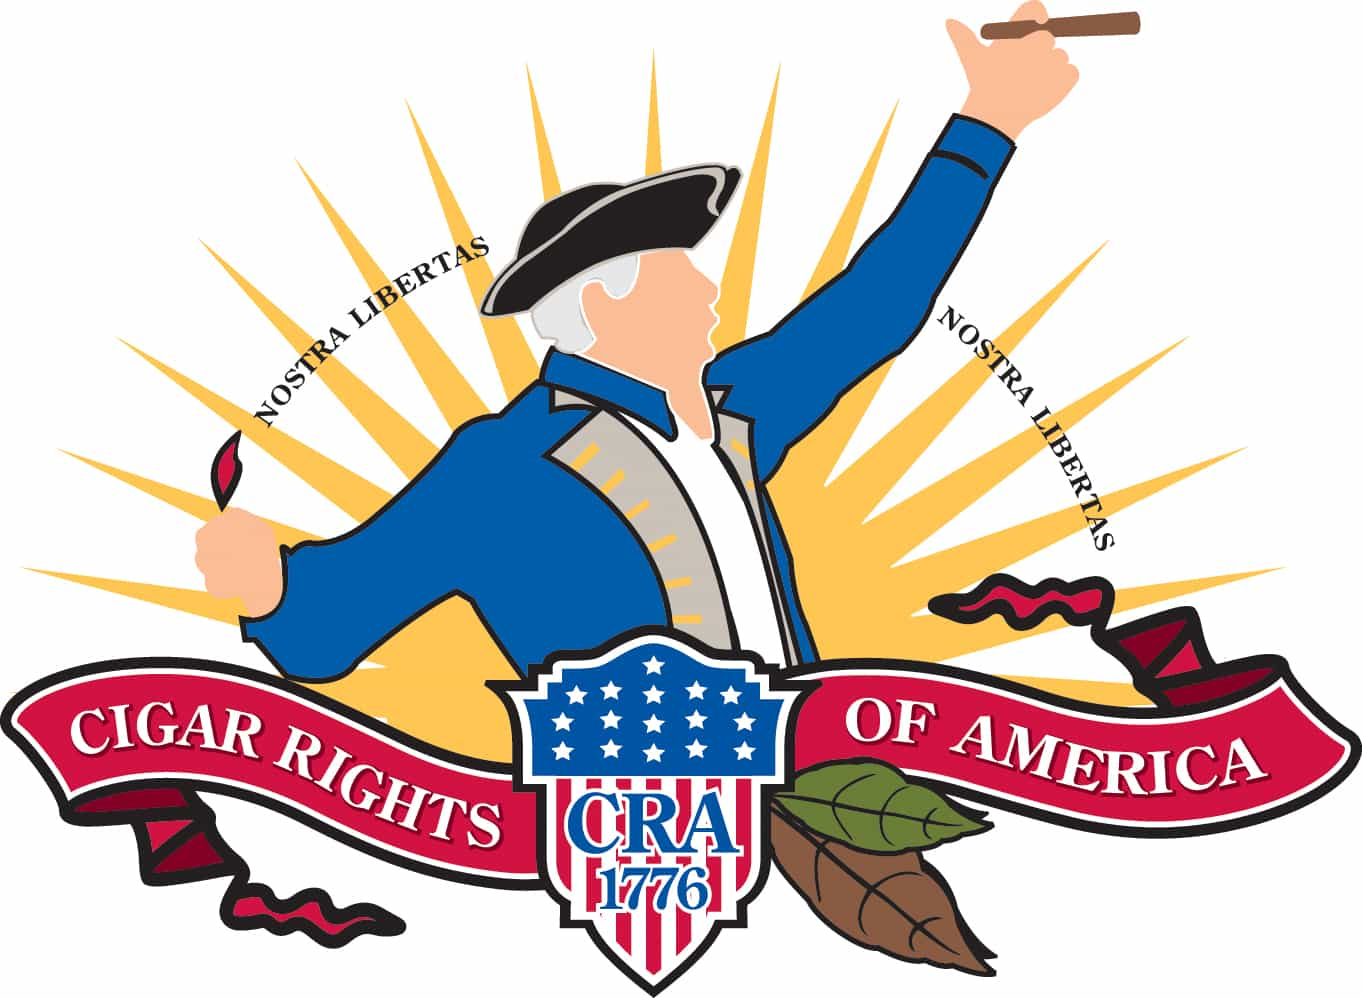 Cigar Rights of America logo